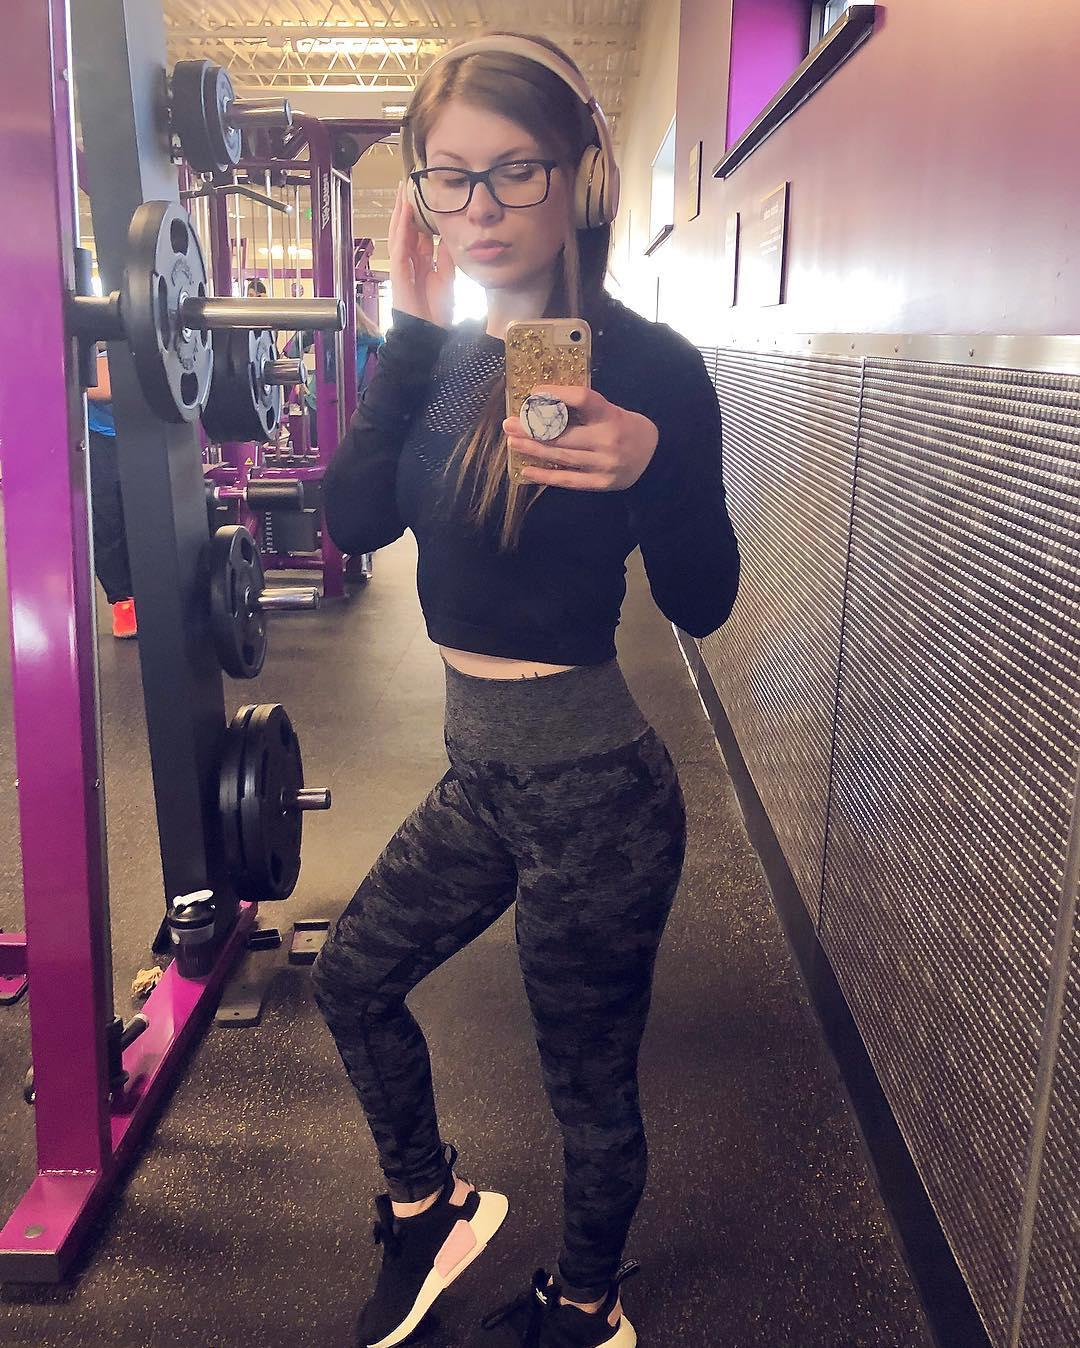 super cute nerdy chick with some hot selfies posing in gym picture 7